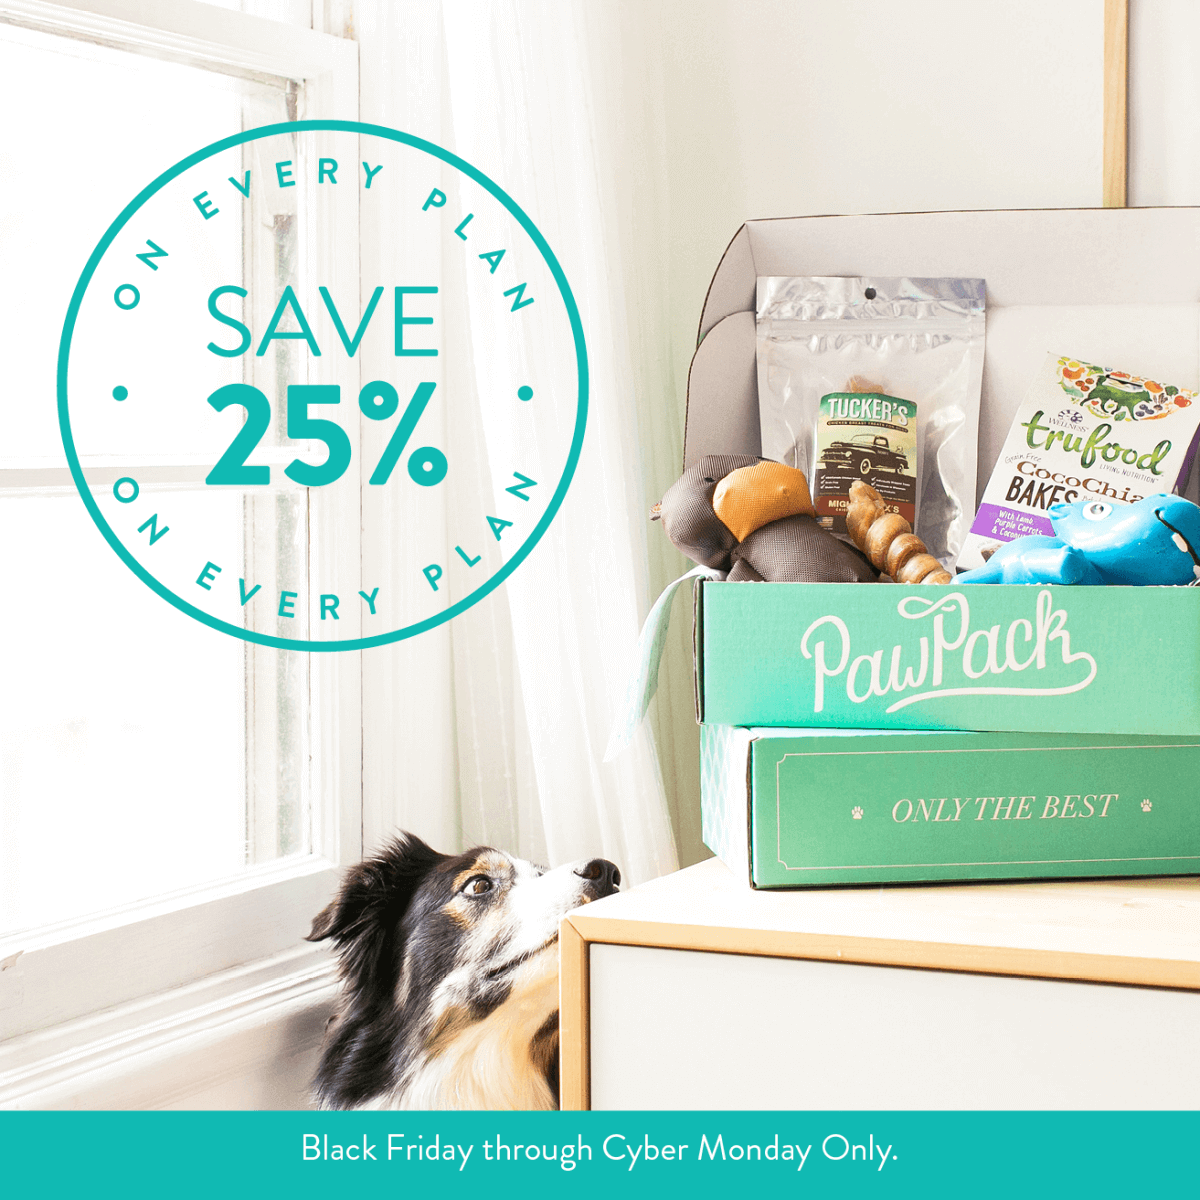 Pawpack Cyber Monday Dog Subscription Box Deal 25 Off All Subscriptions Hello Subscription